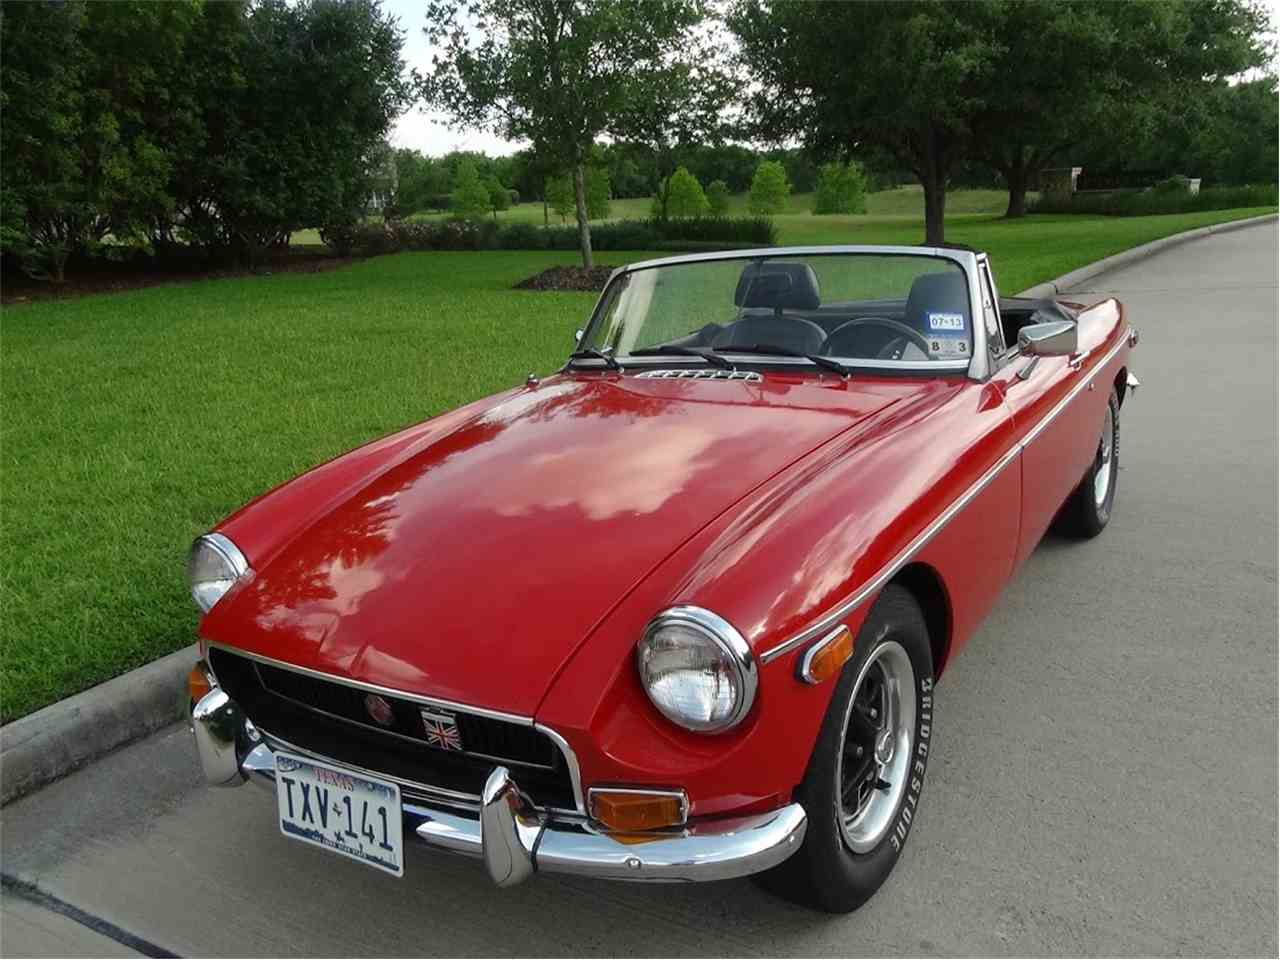 Cars For Sale In Houston: 1971 MG MGB For Sale